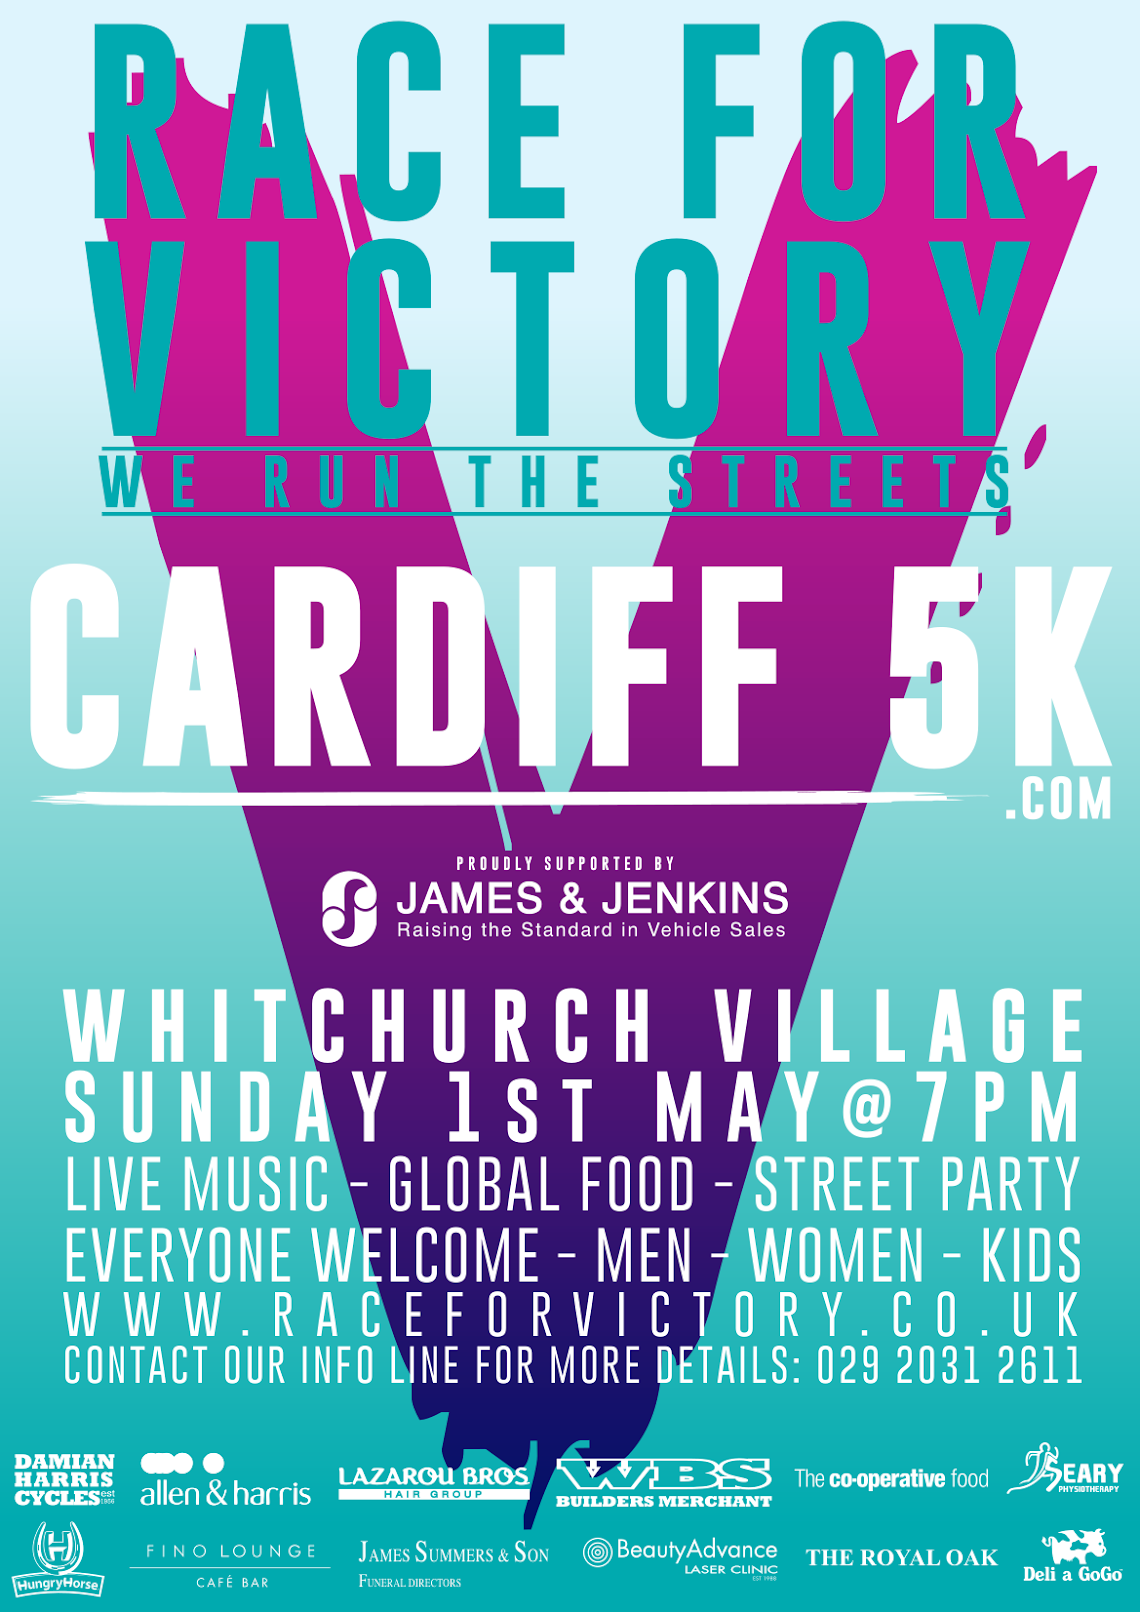 Cardiff 5K - Race For Victory flyer